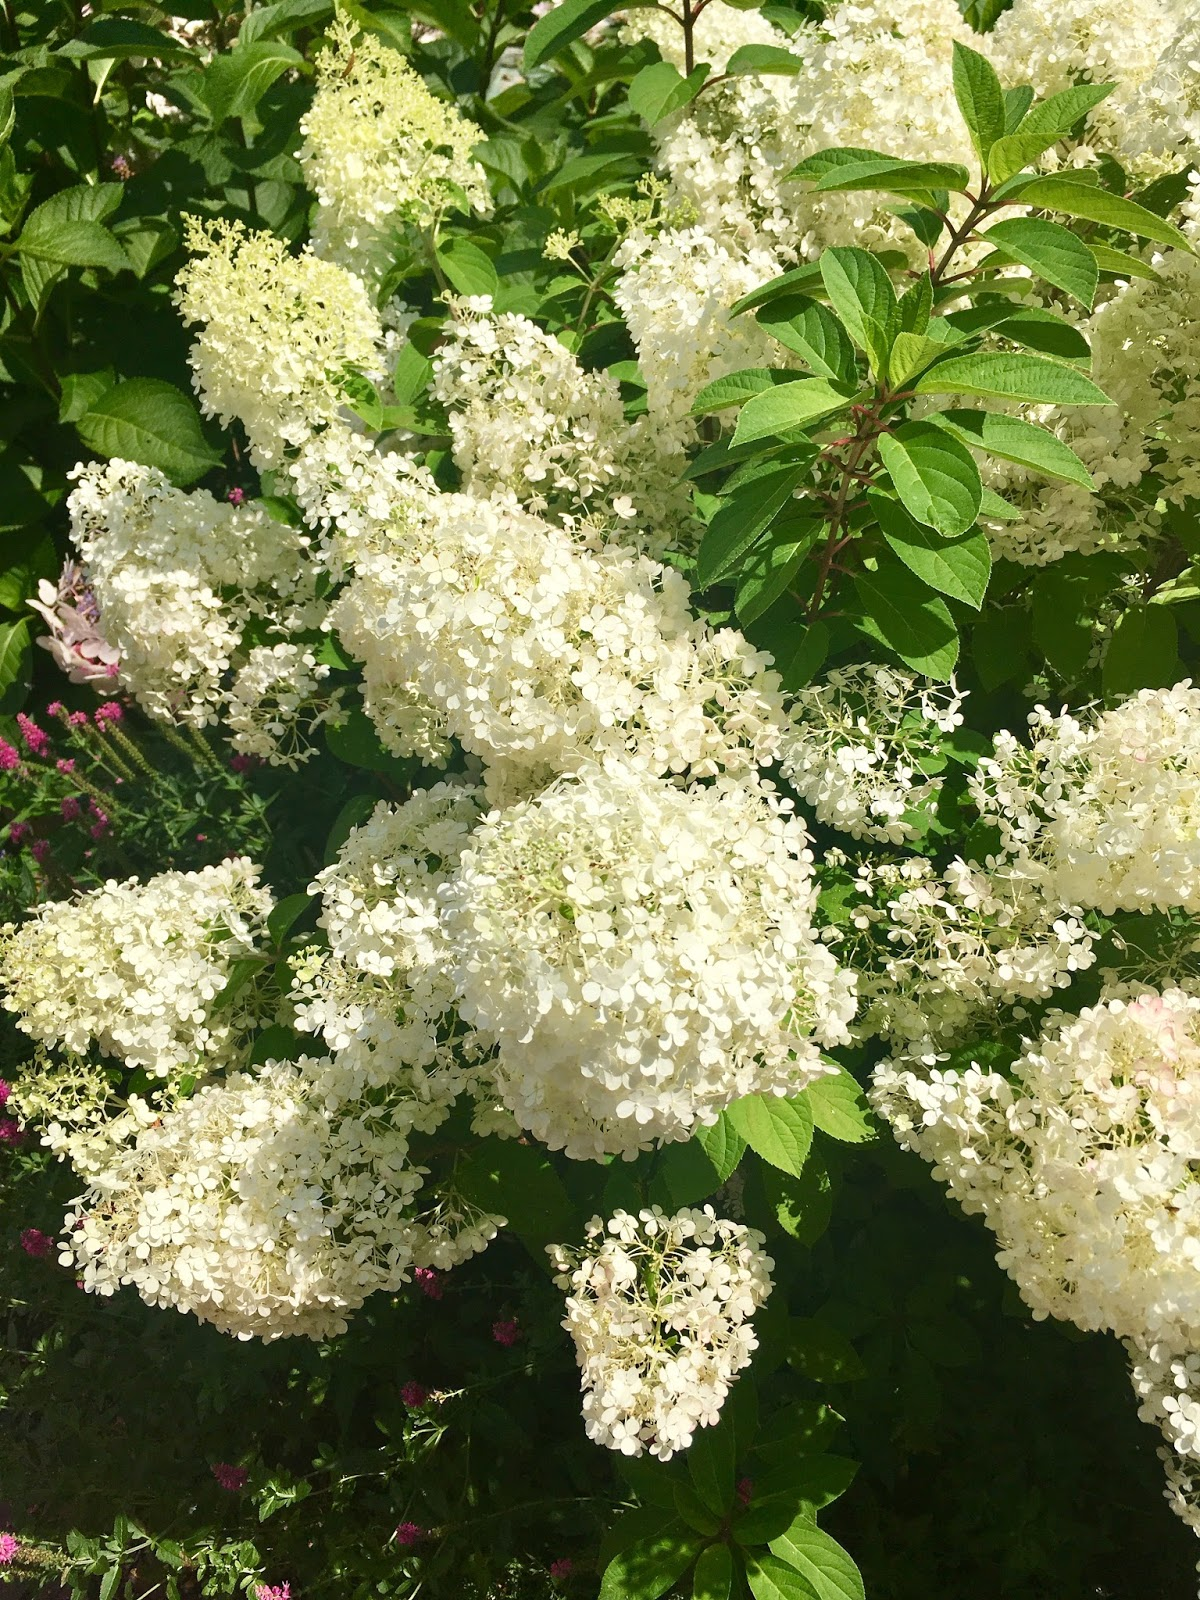 Garden bush with white flowers